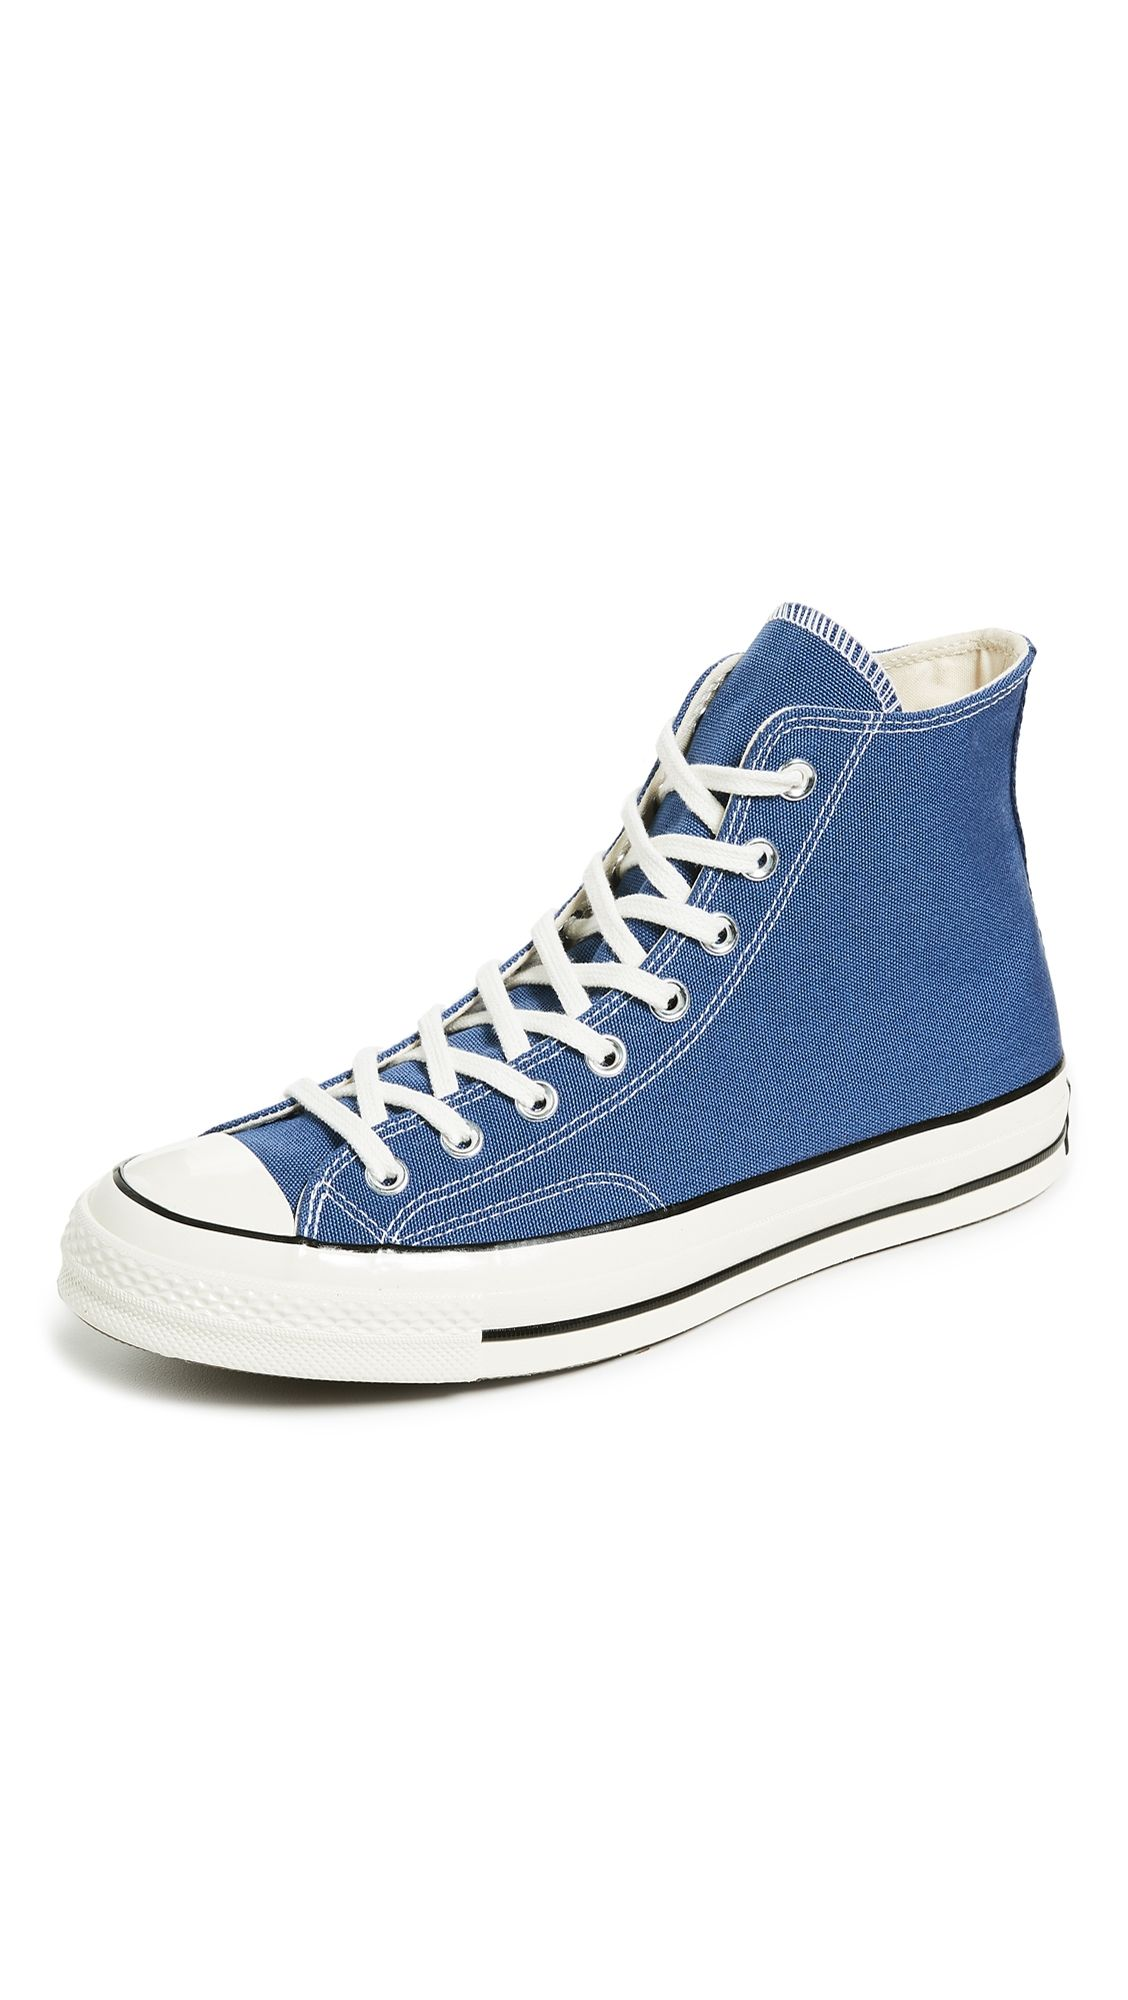 72546a29f33 CONVERSE CHUCK TAYLOR 70 HIGH TOP SNEAKERS